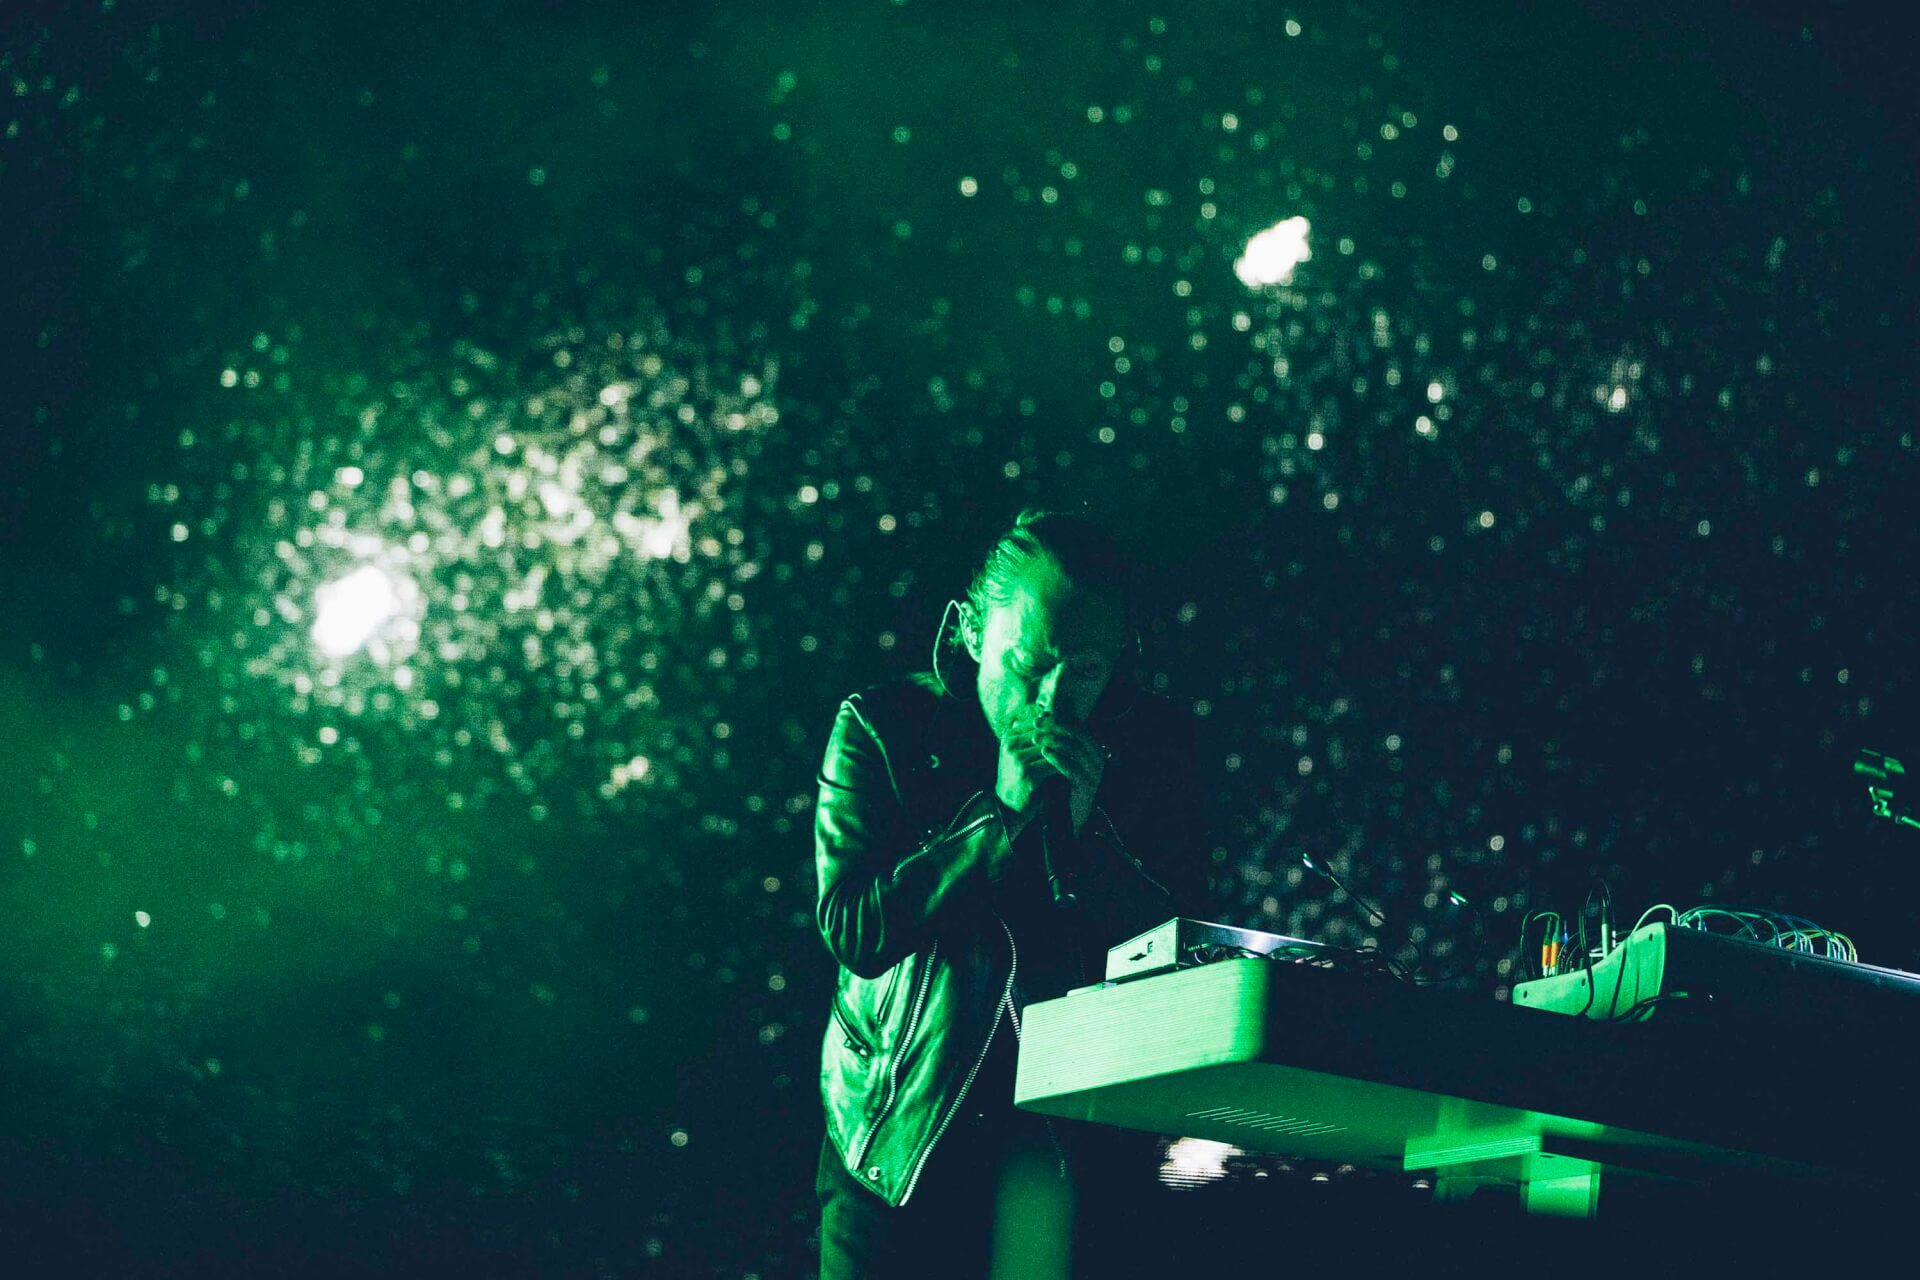 振り返るフジロック2019|THOM YORKE TOMORROW'S MODERN BOXES photo-report190822-thomyorke-4.jpg